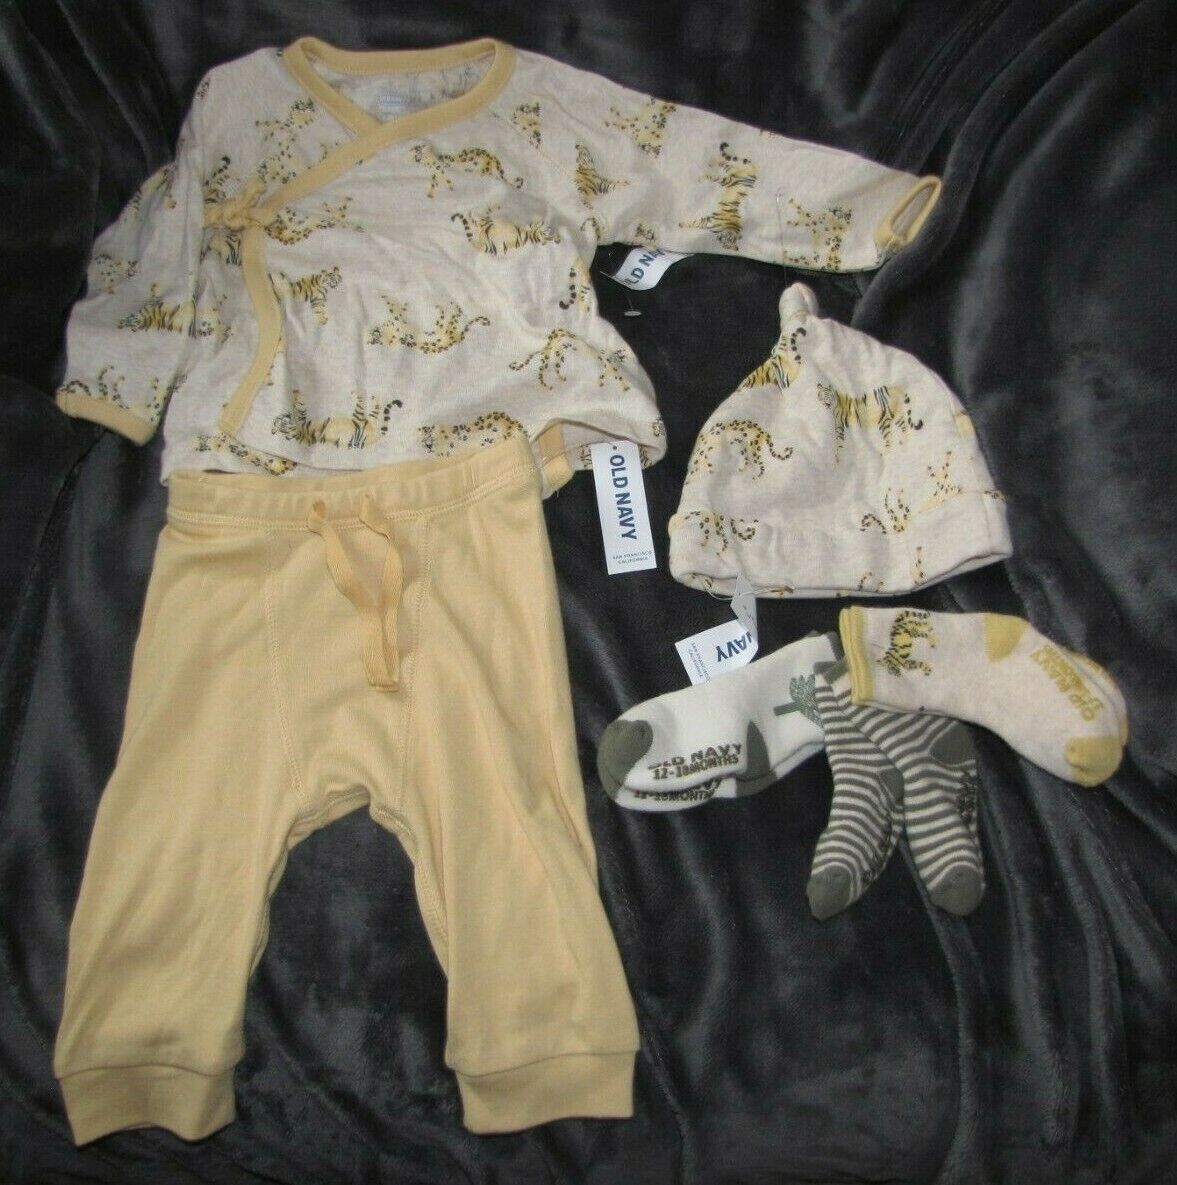 OLD NAVY TIGER 6 PC BABY CLOTHES OUTFIT SET LOT KIMONO TOP P